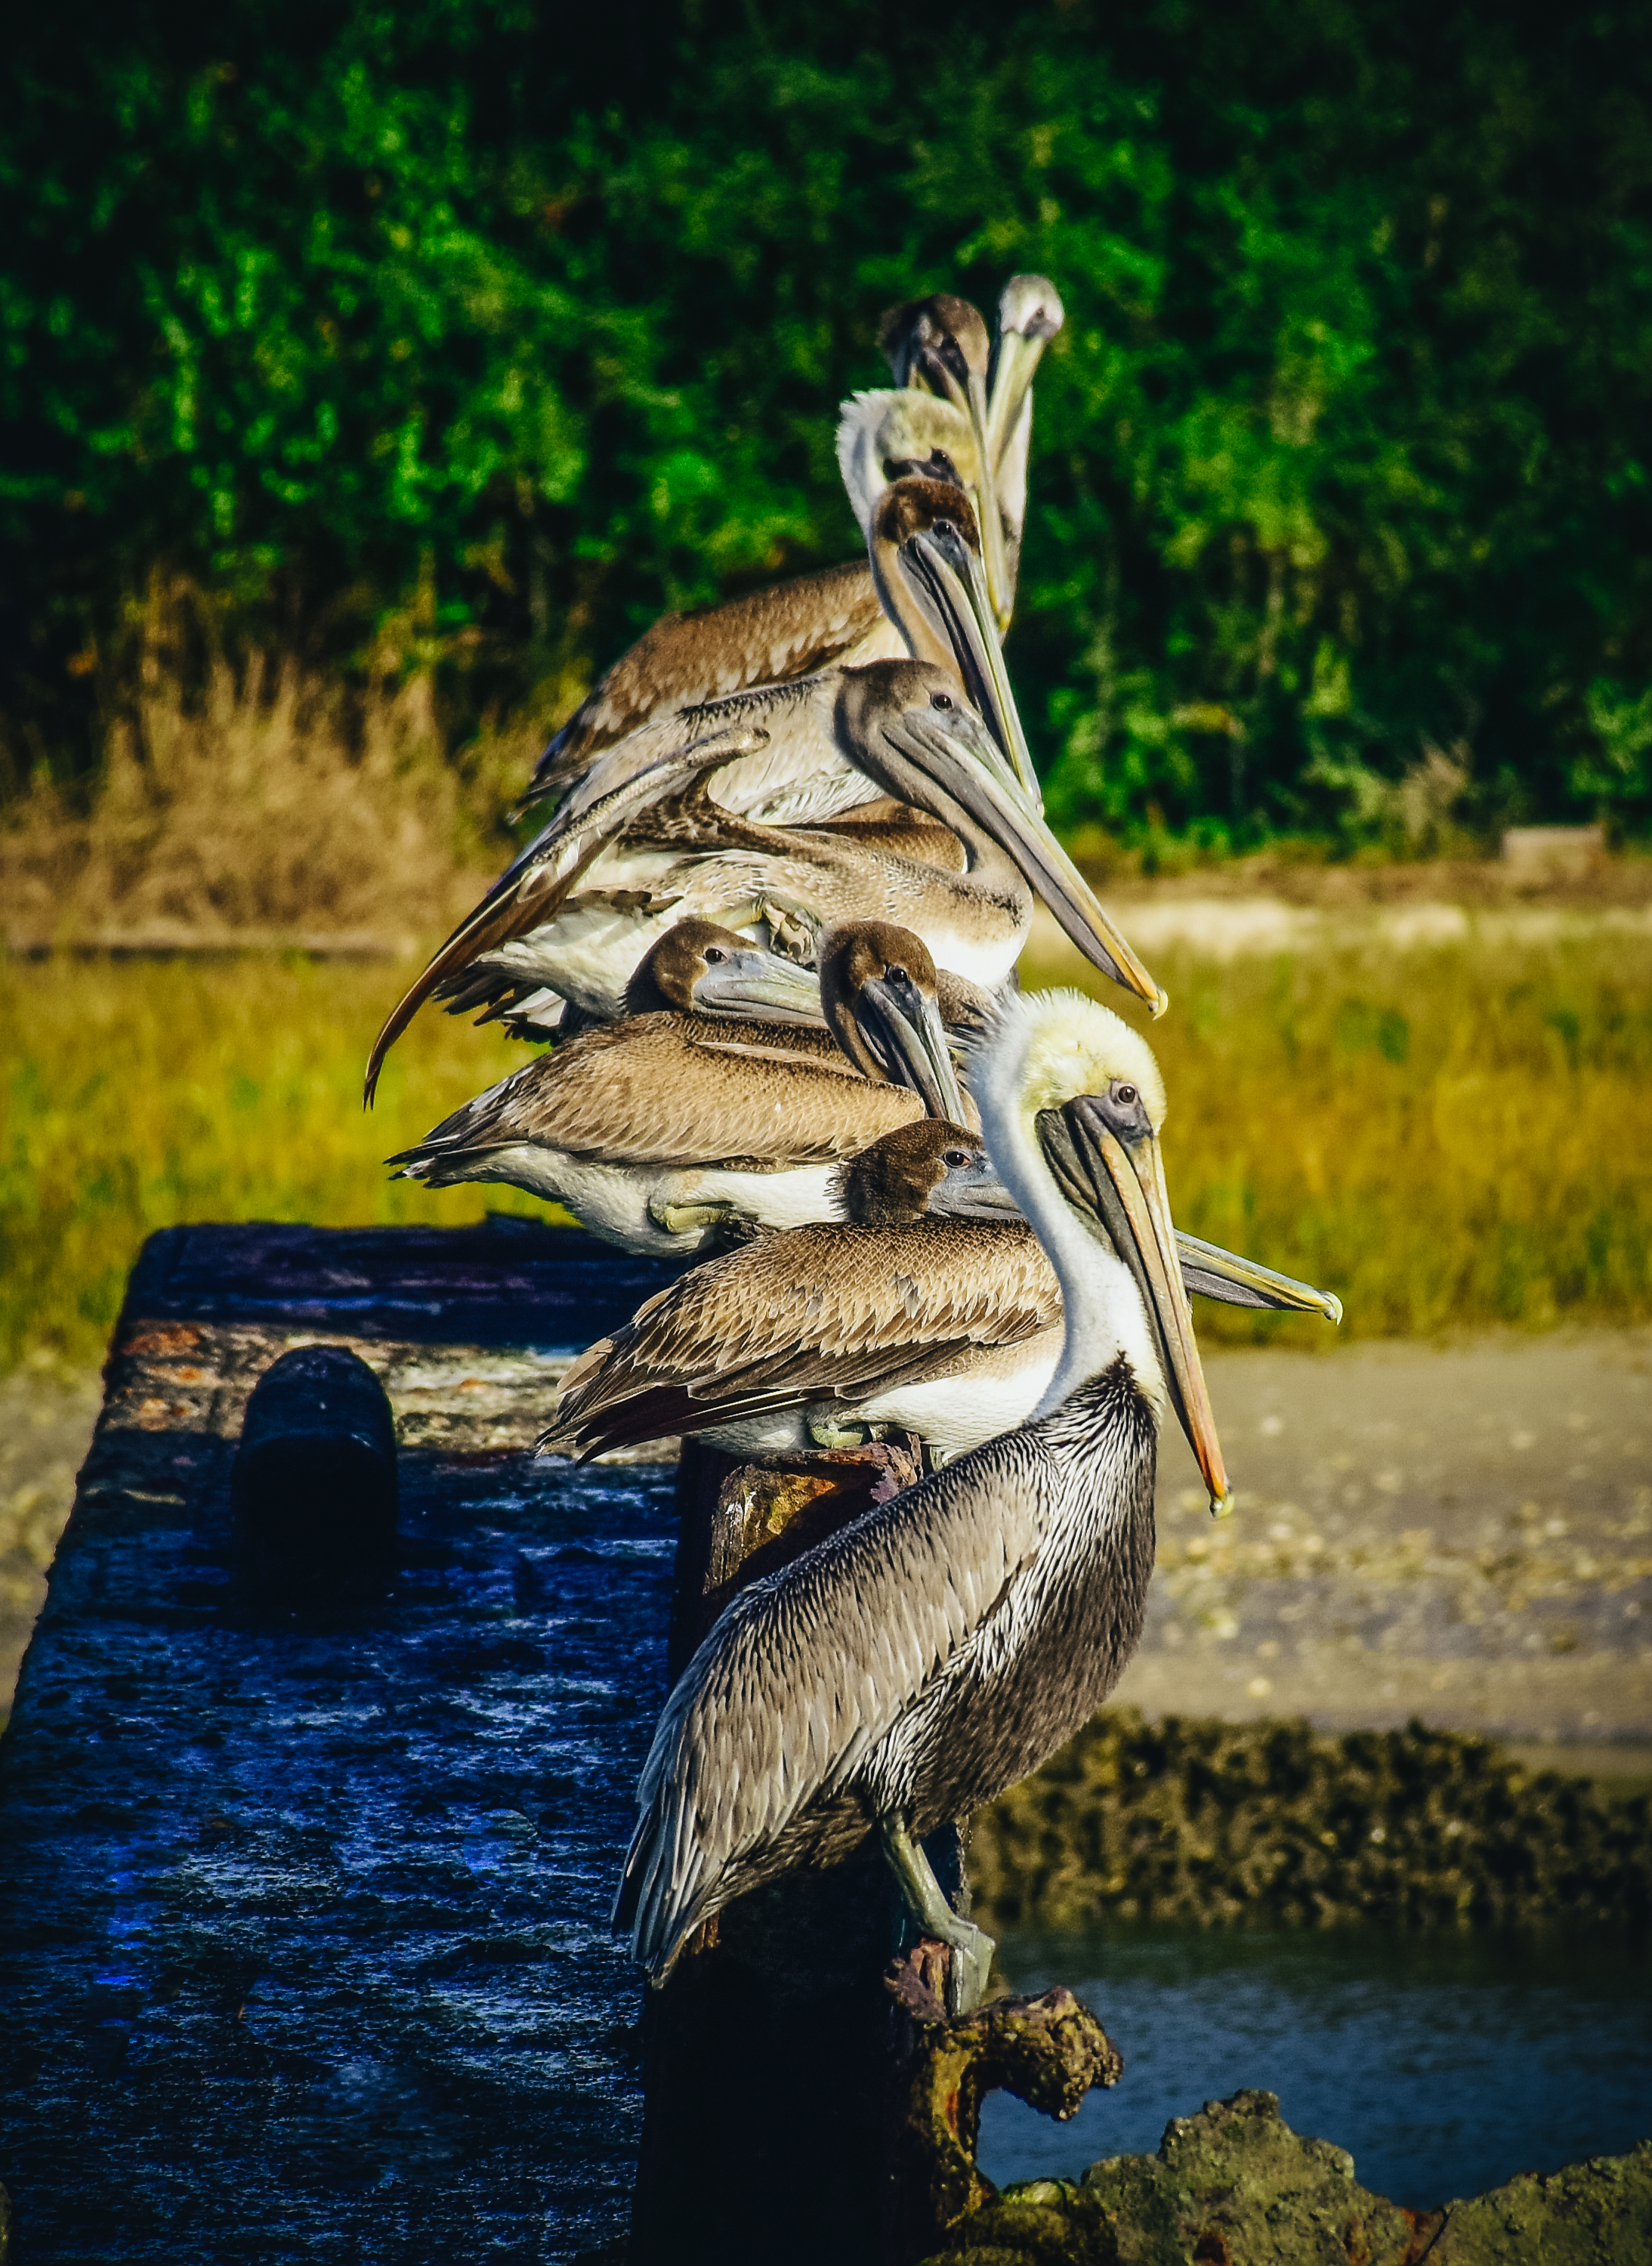 Pelicans! So many, many pelicans everywhere on Amelia Island and especially here at Fernandina Beach.